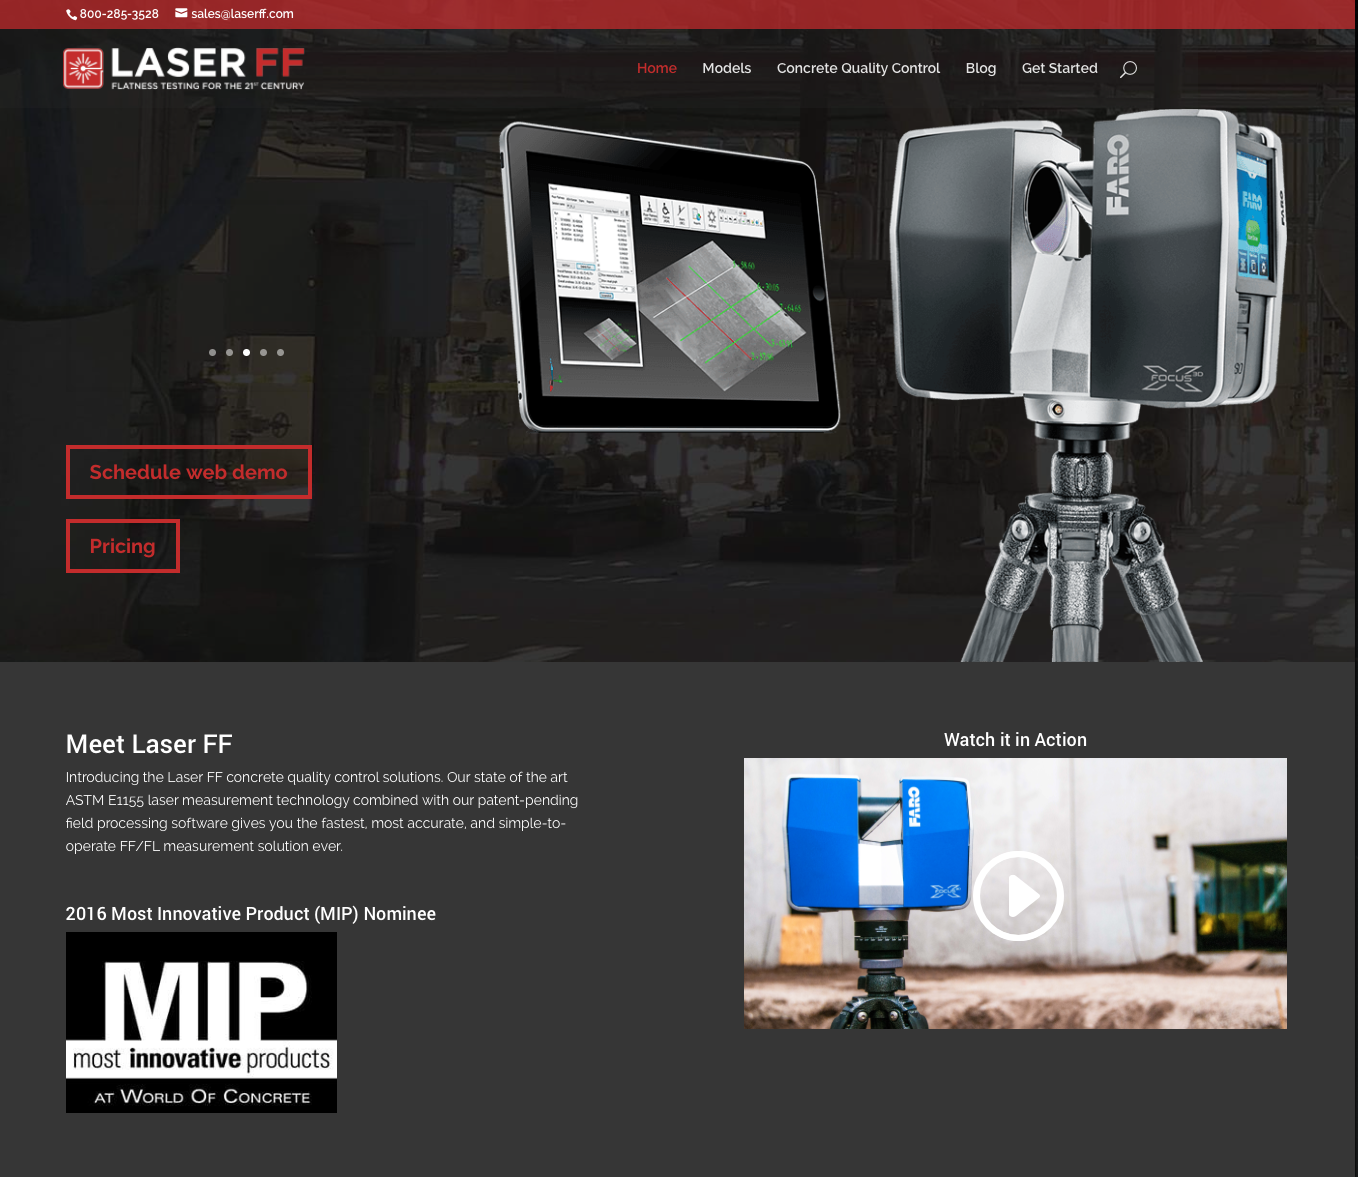 Laser FF Home Page